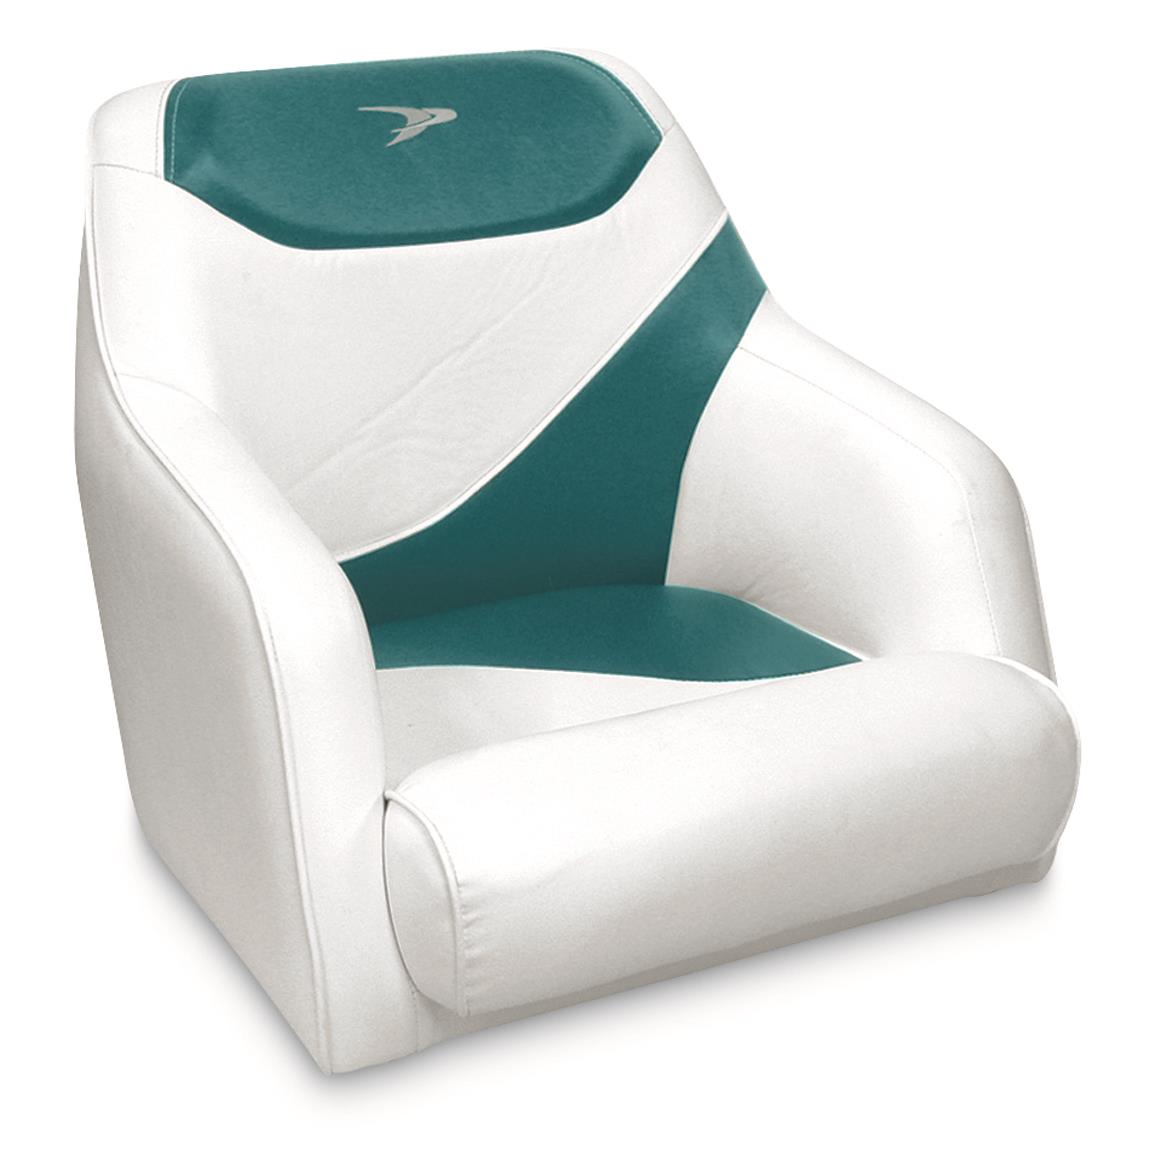 Wise Premium Deluxe Bucket Boat Seat, White/Hot Teal